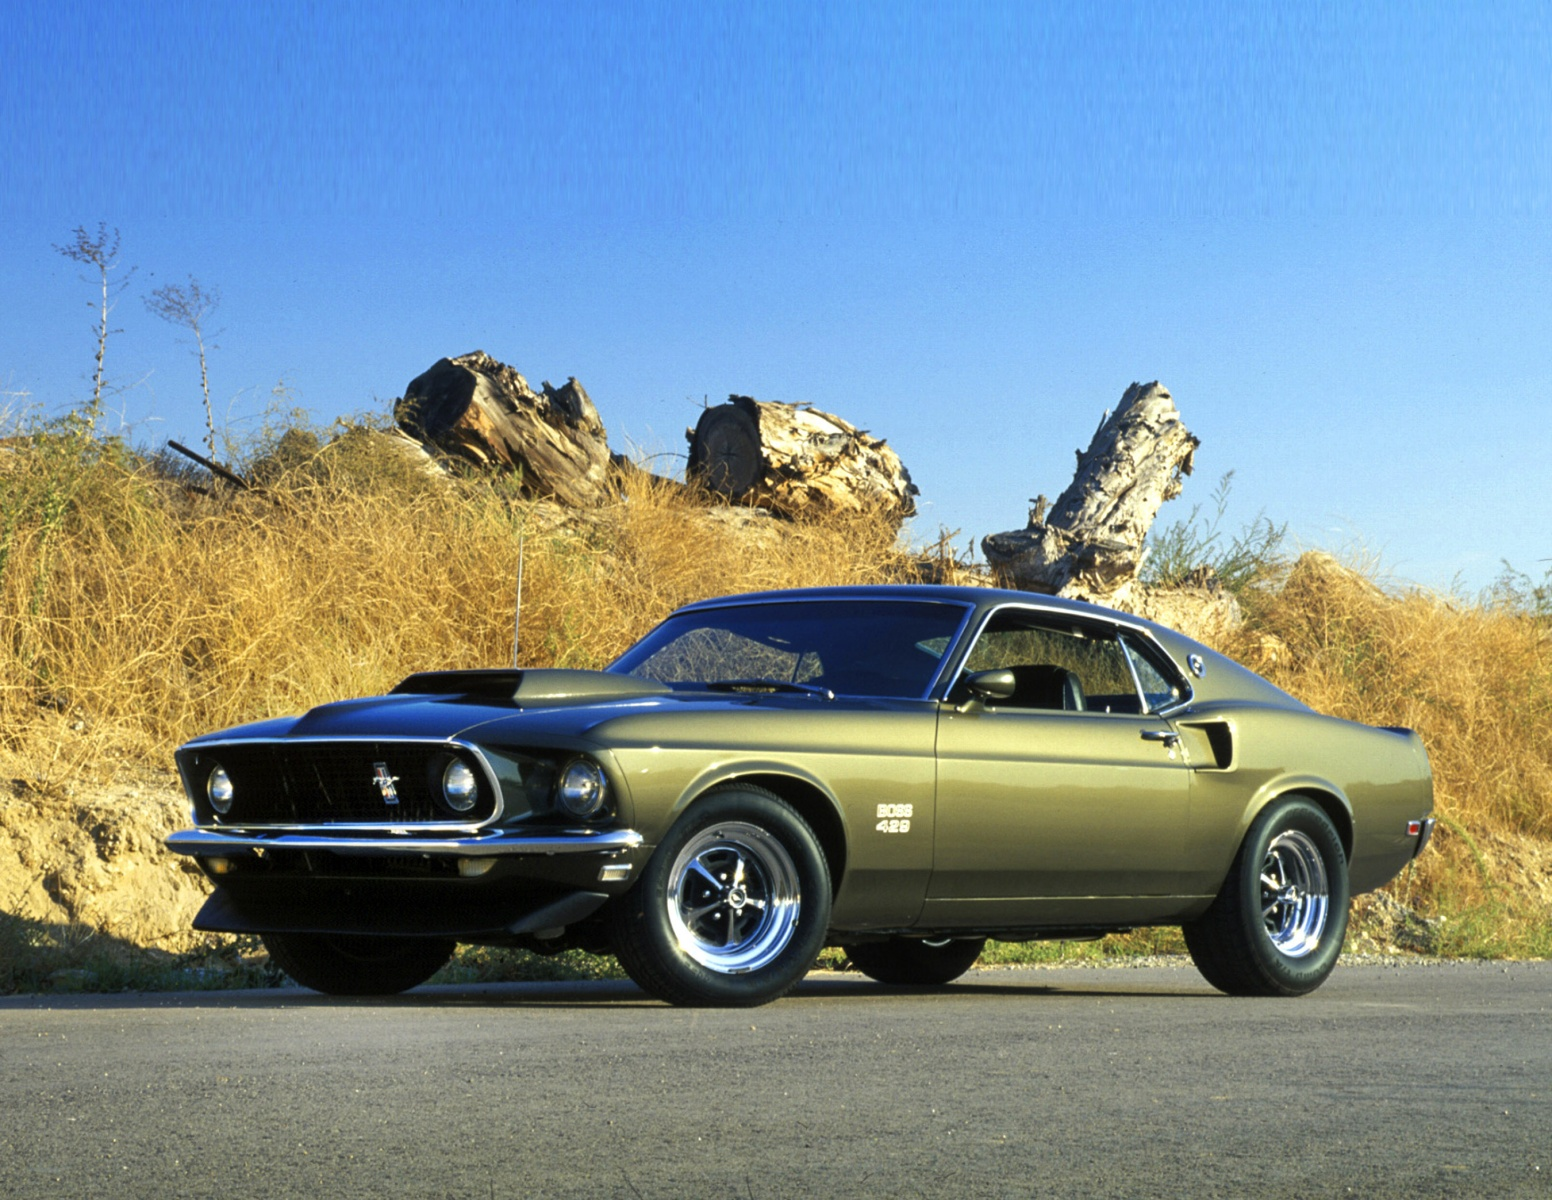 8 Little Known Facts About Muscle Cars